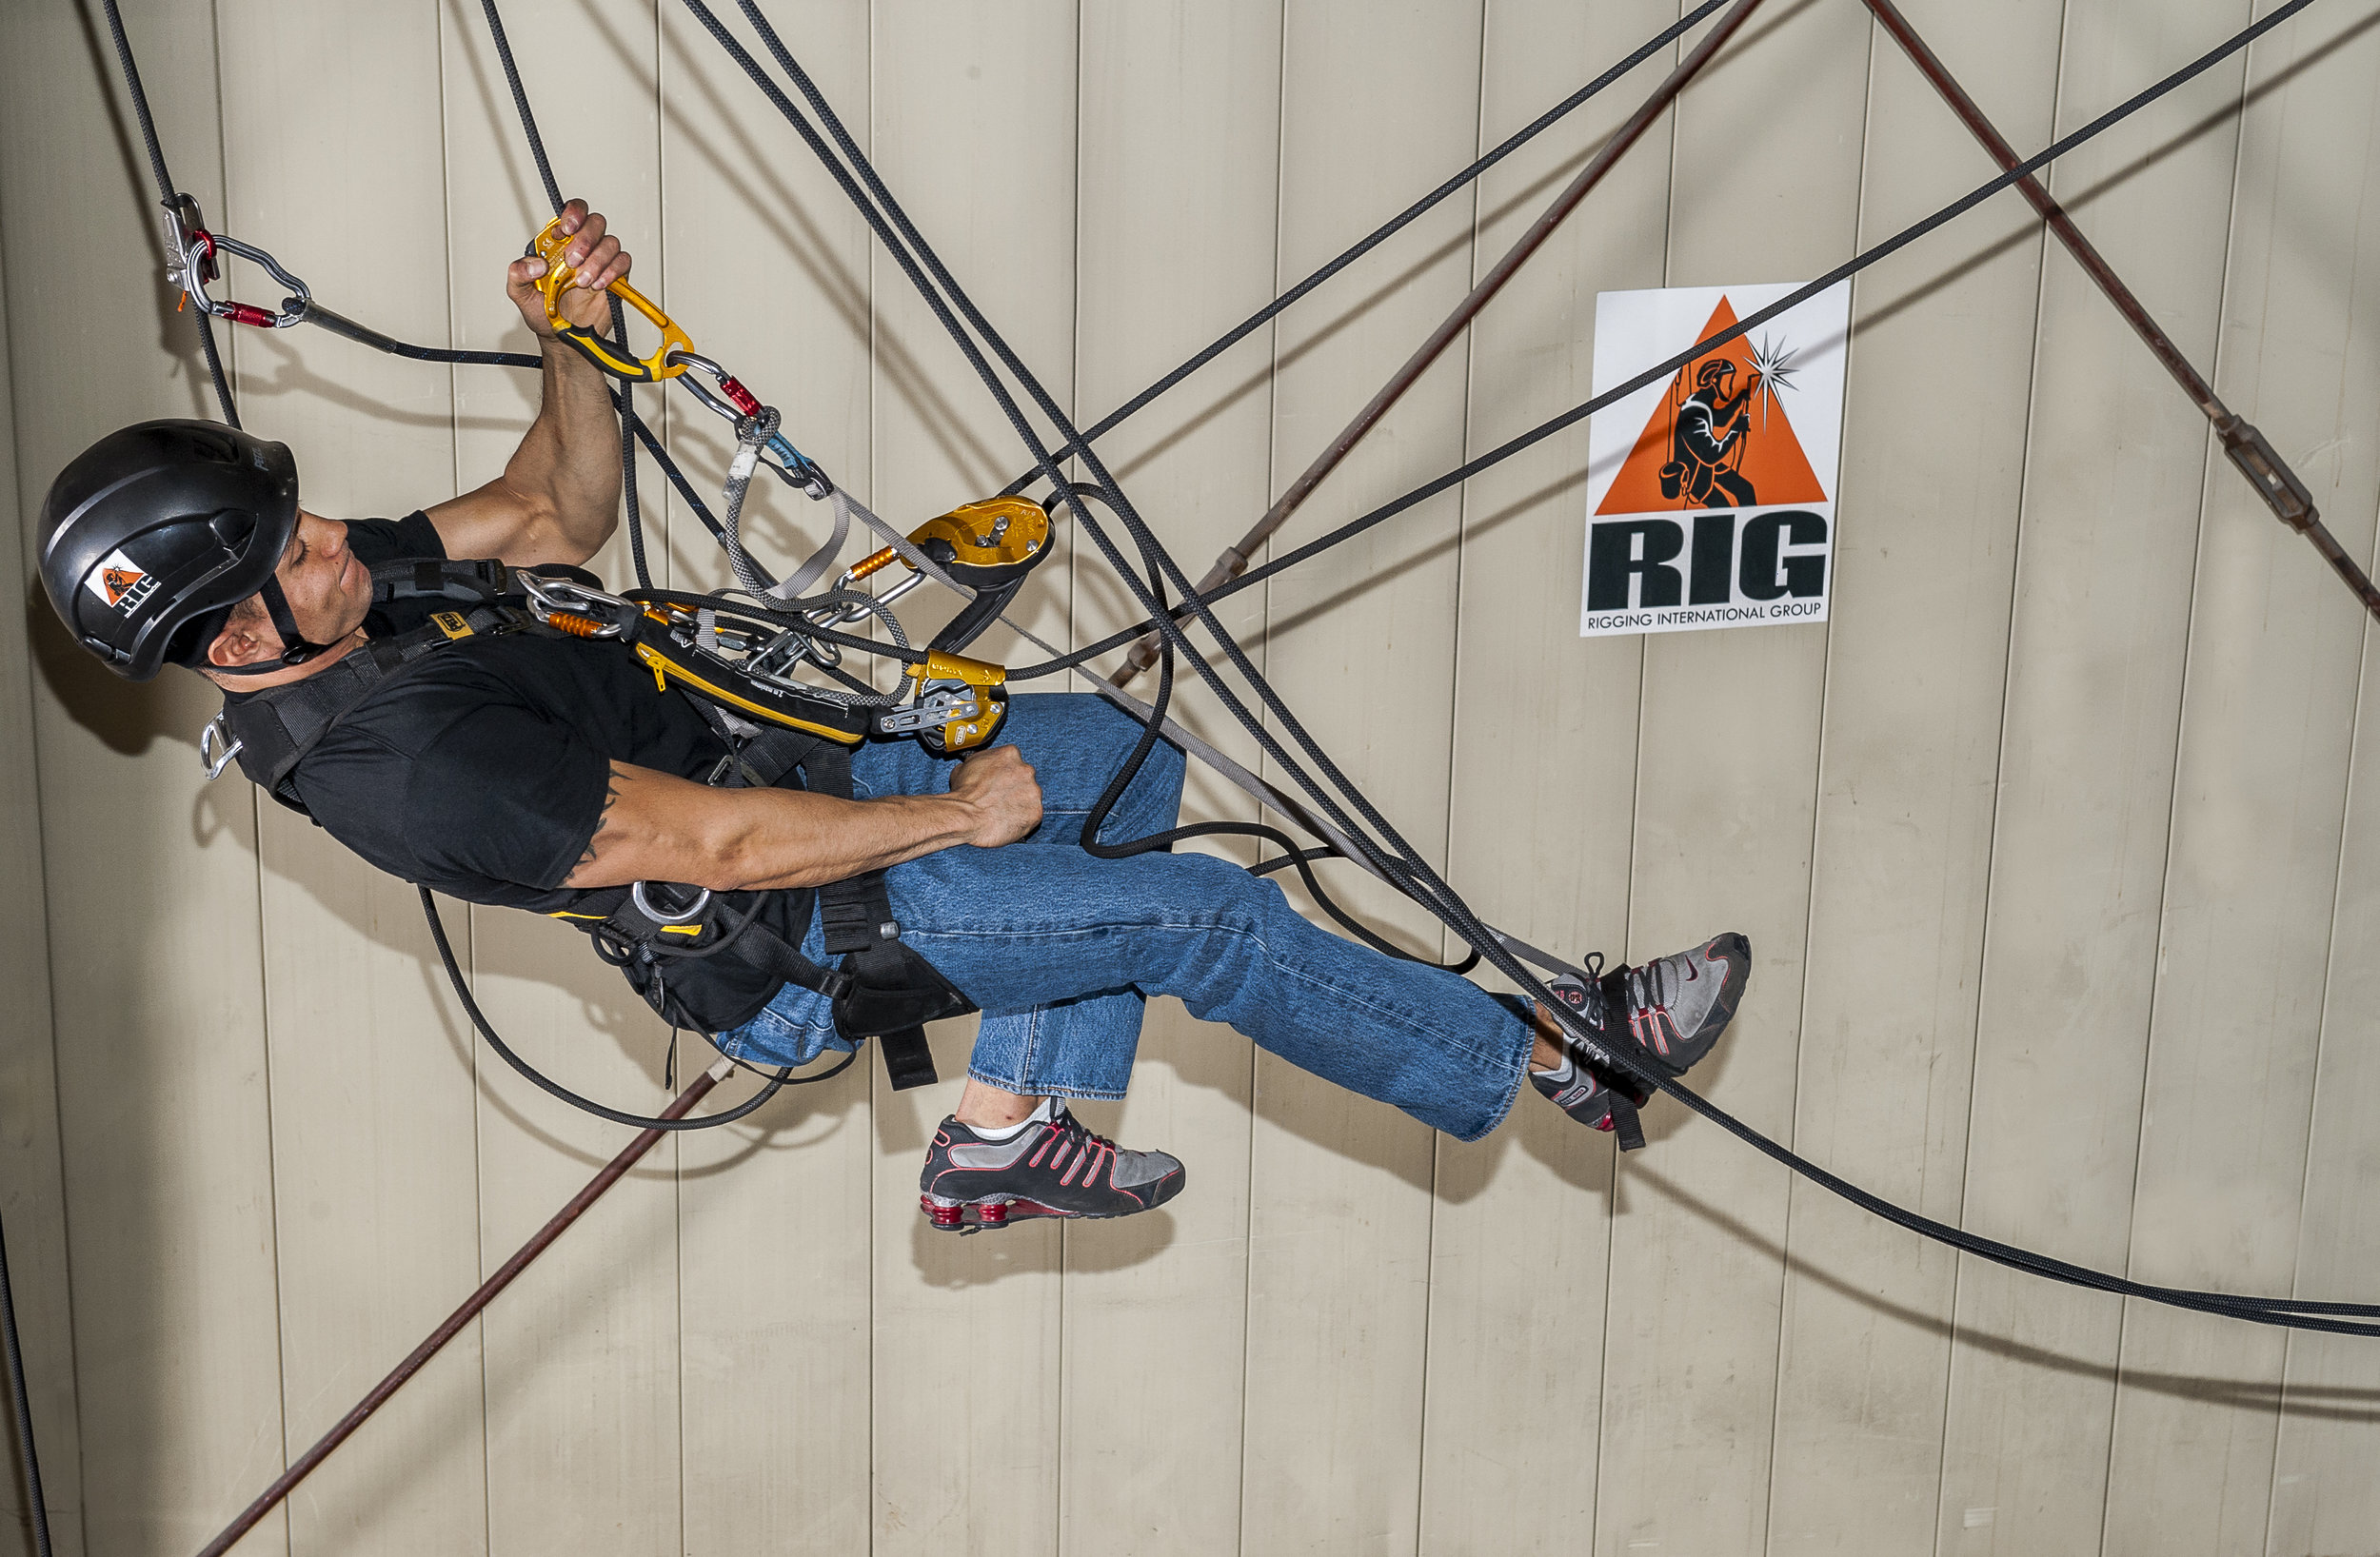 Rig Training Archives Rigging International Group Wire Harness Images Tagged R I G